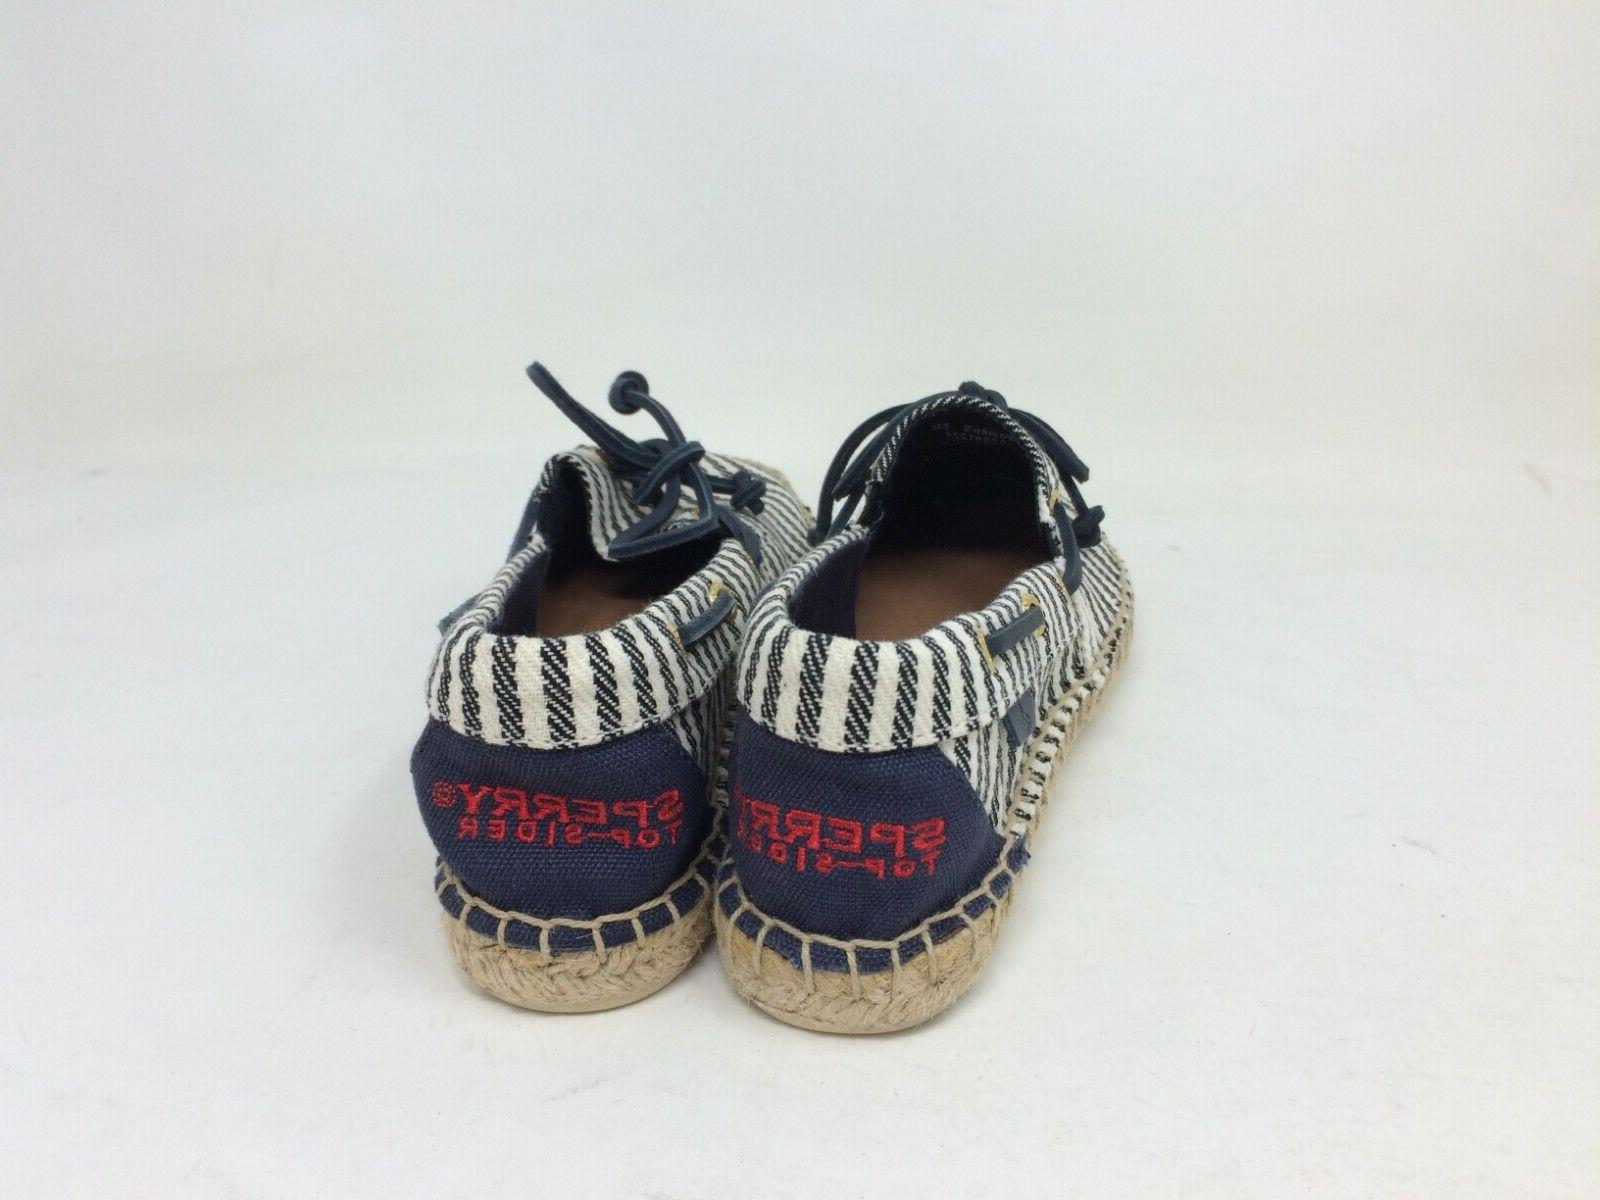 New In Sperry Katama Nvy/White